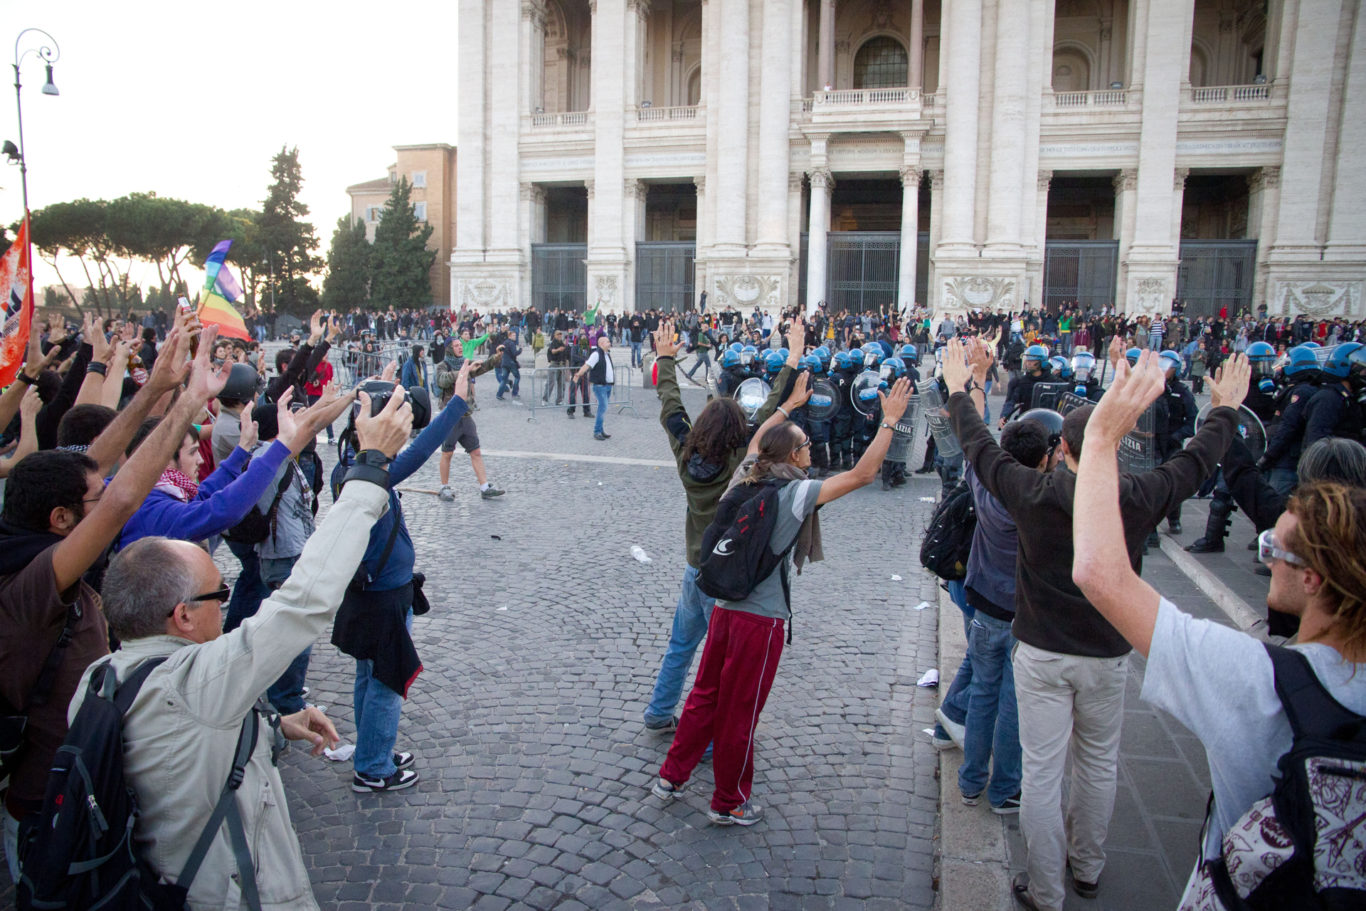 Rome - October 15th Global Day Of Action. On march from 14 pm Italians protesters have crossed the center of town crossing the termini station, Fori Imperiali, the Colosseum, to arrive at Piazza San Giovanni. Most of the clashes have occurred at the end on Piazza San Giovanni.